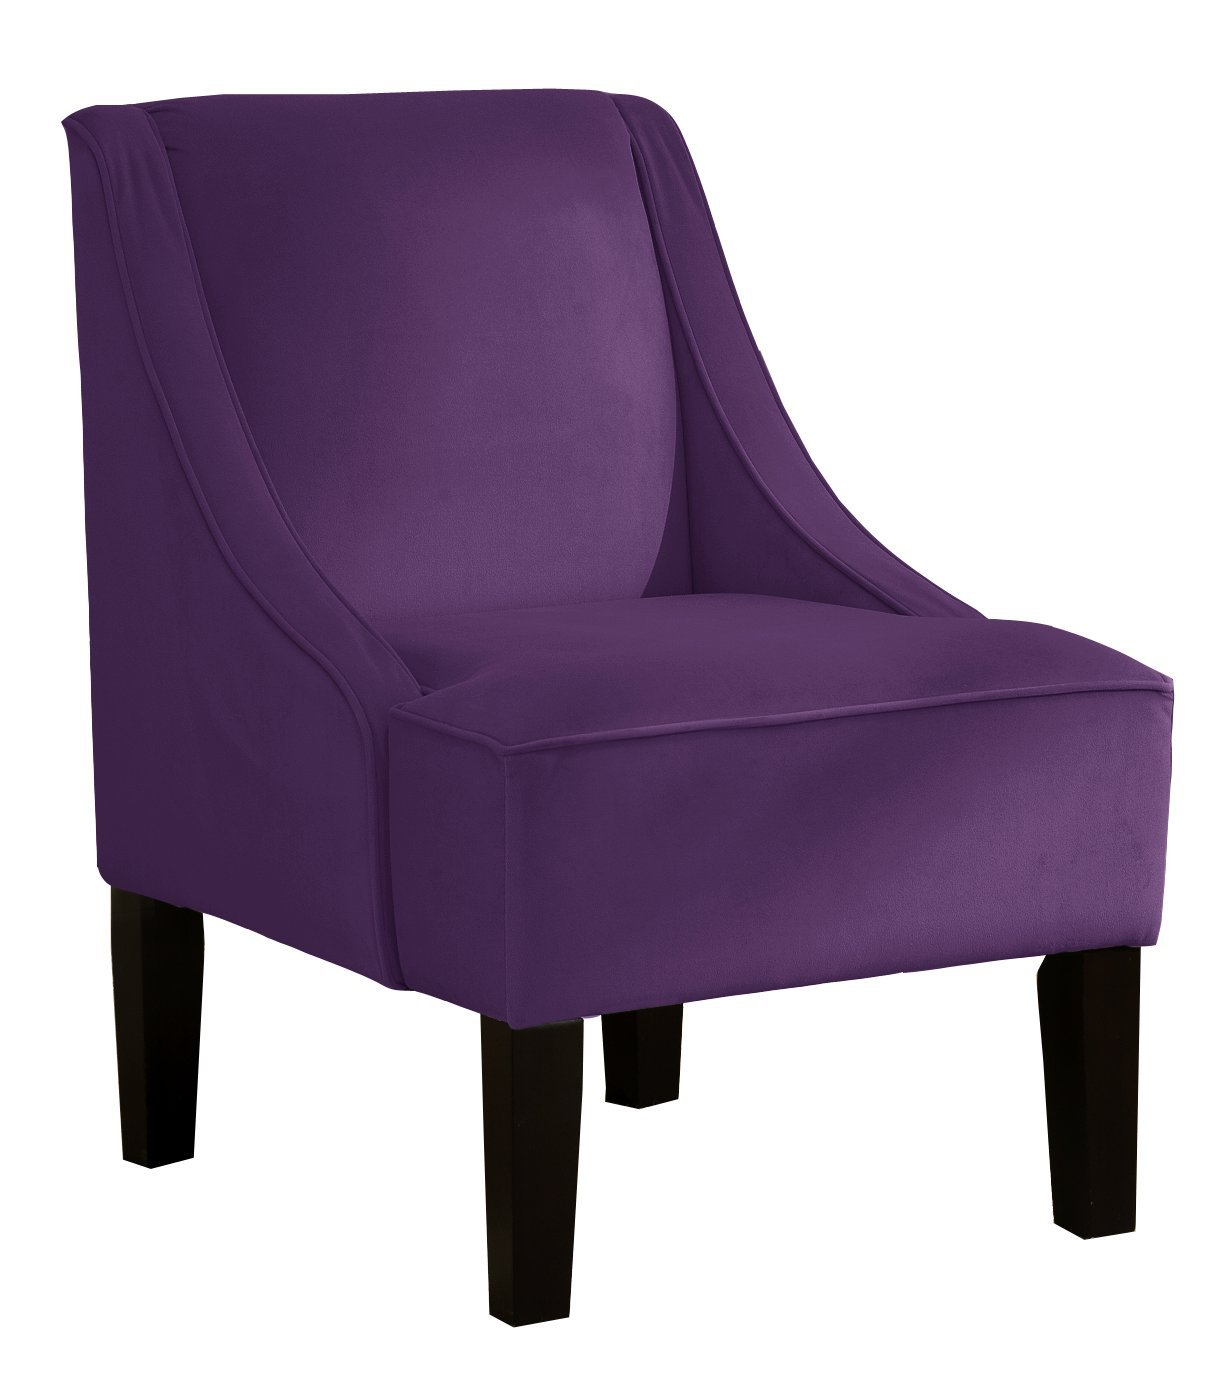 Large Purple Chair For Living Room